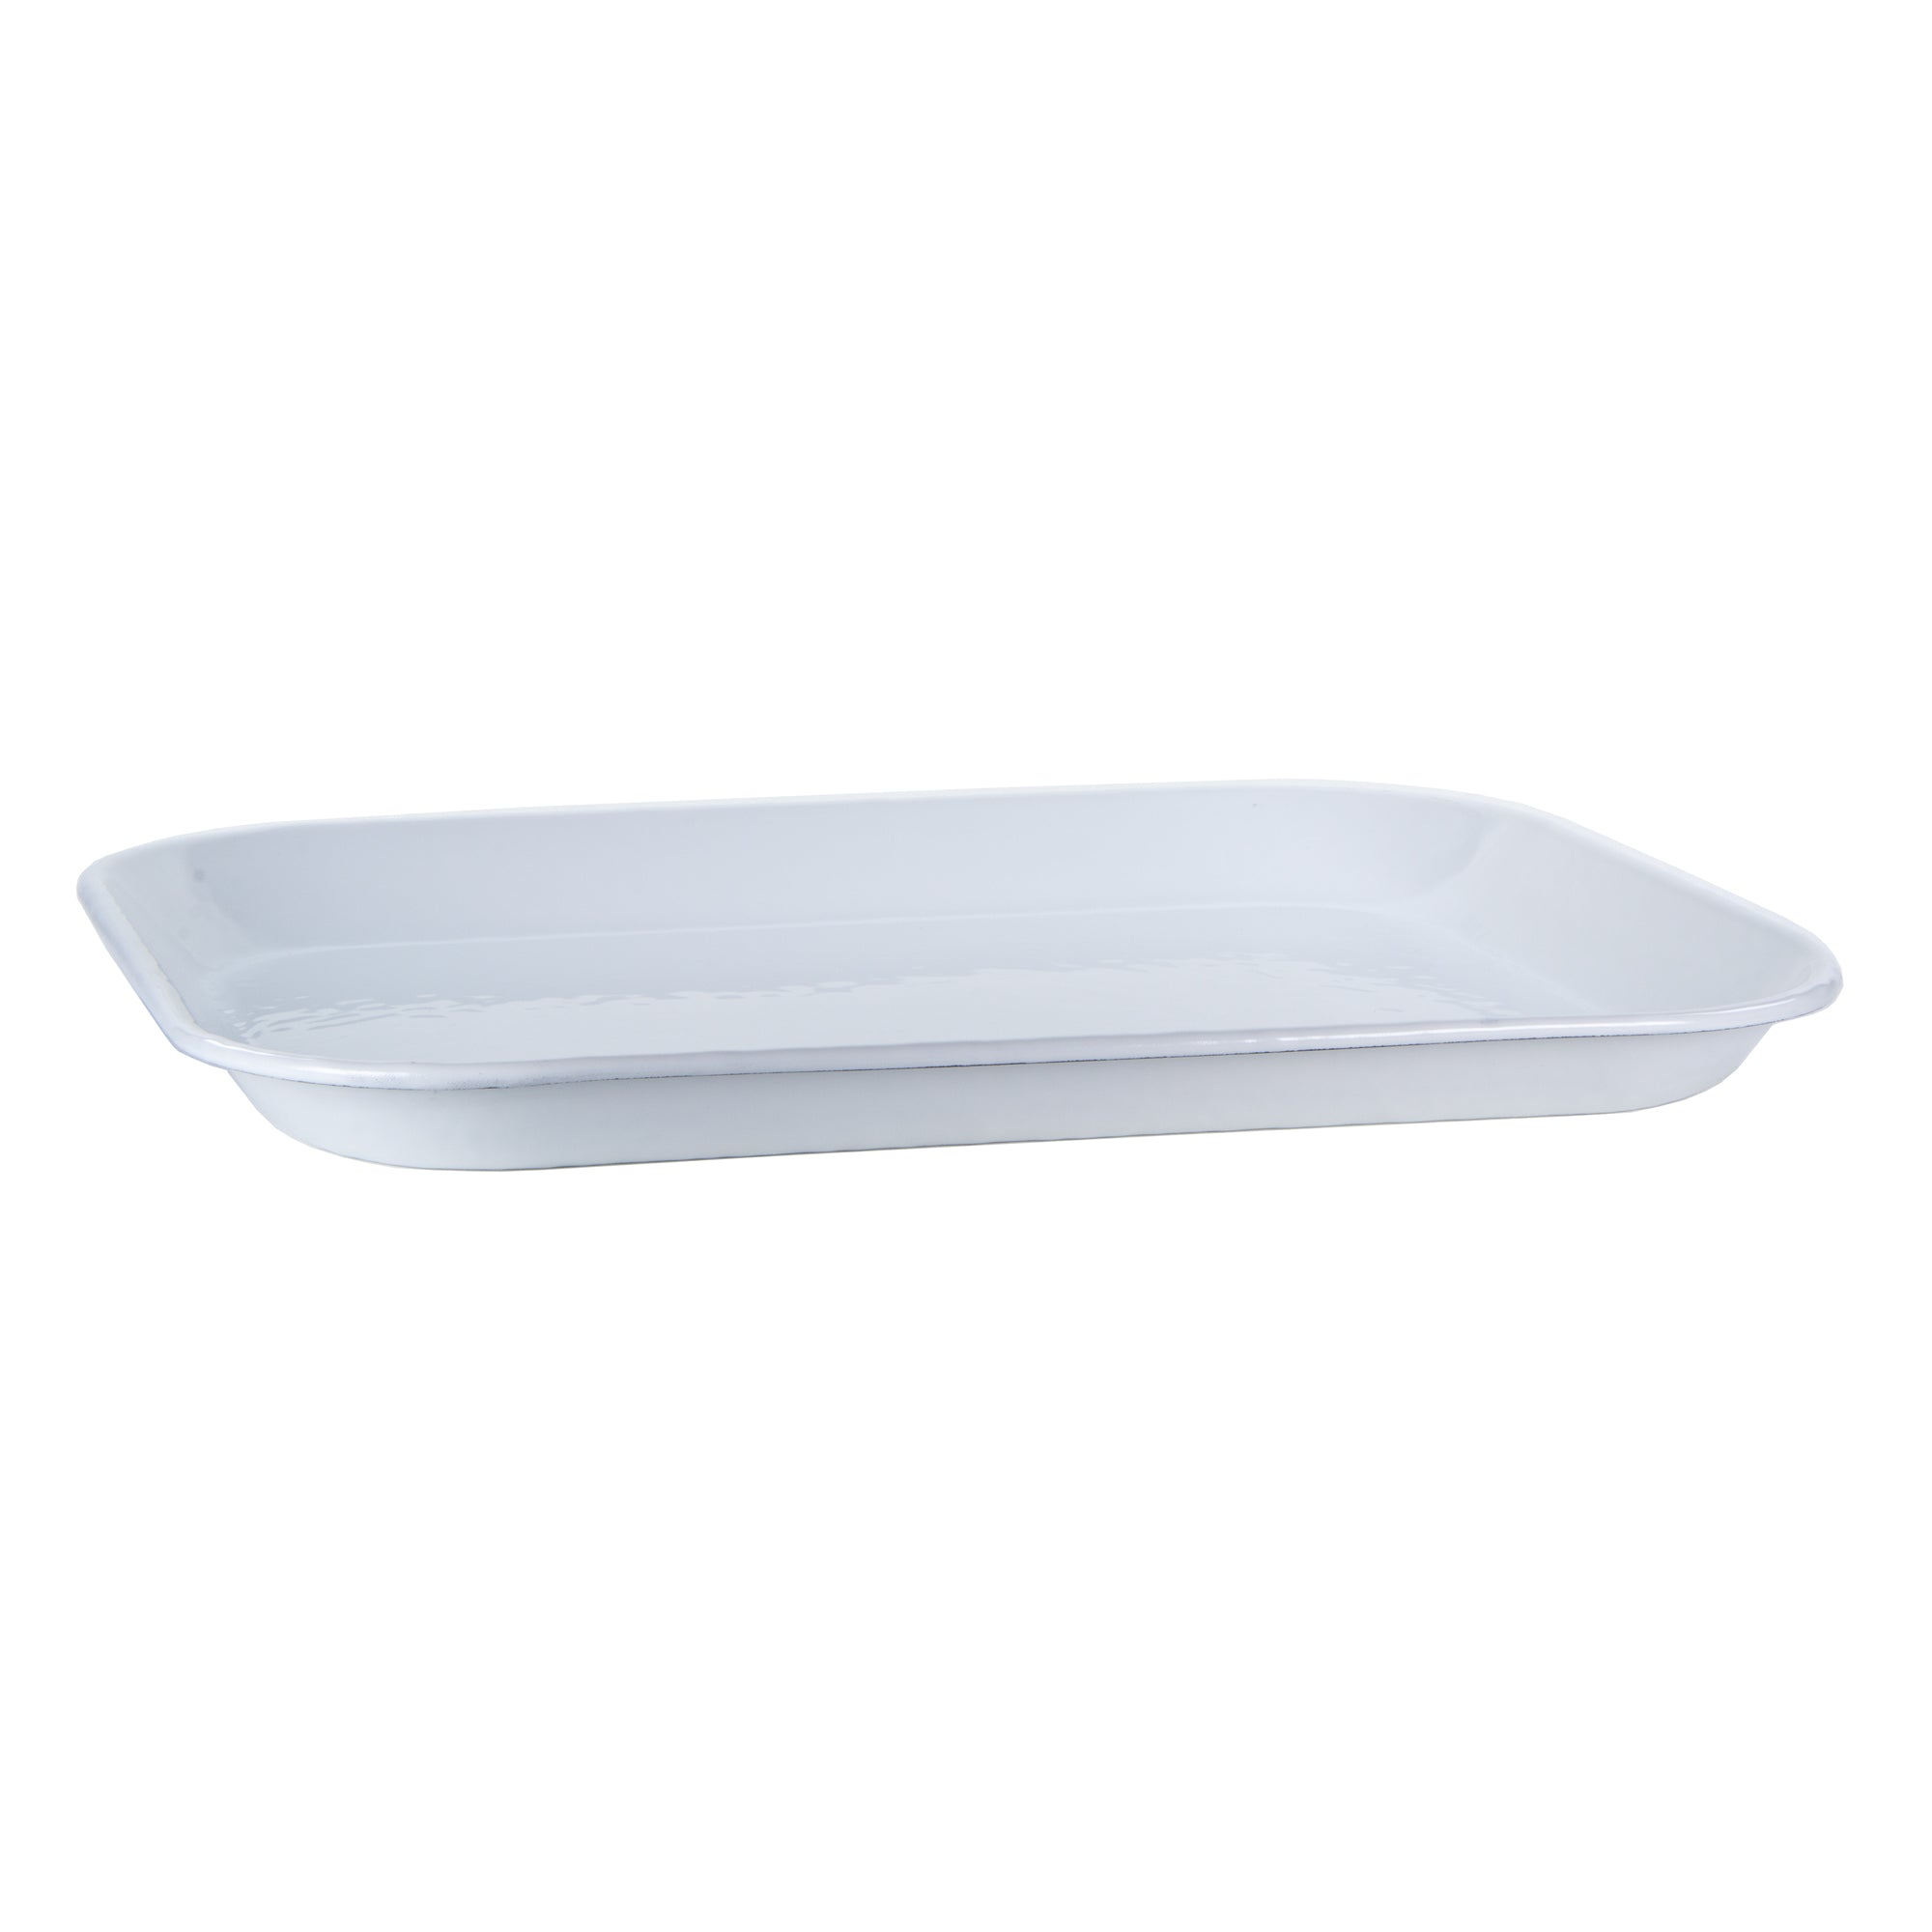 WW98 - Solid White Half Sheet Tray Image 2